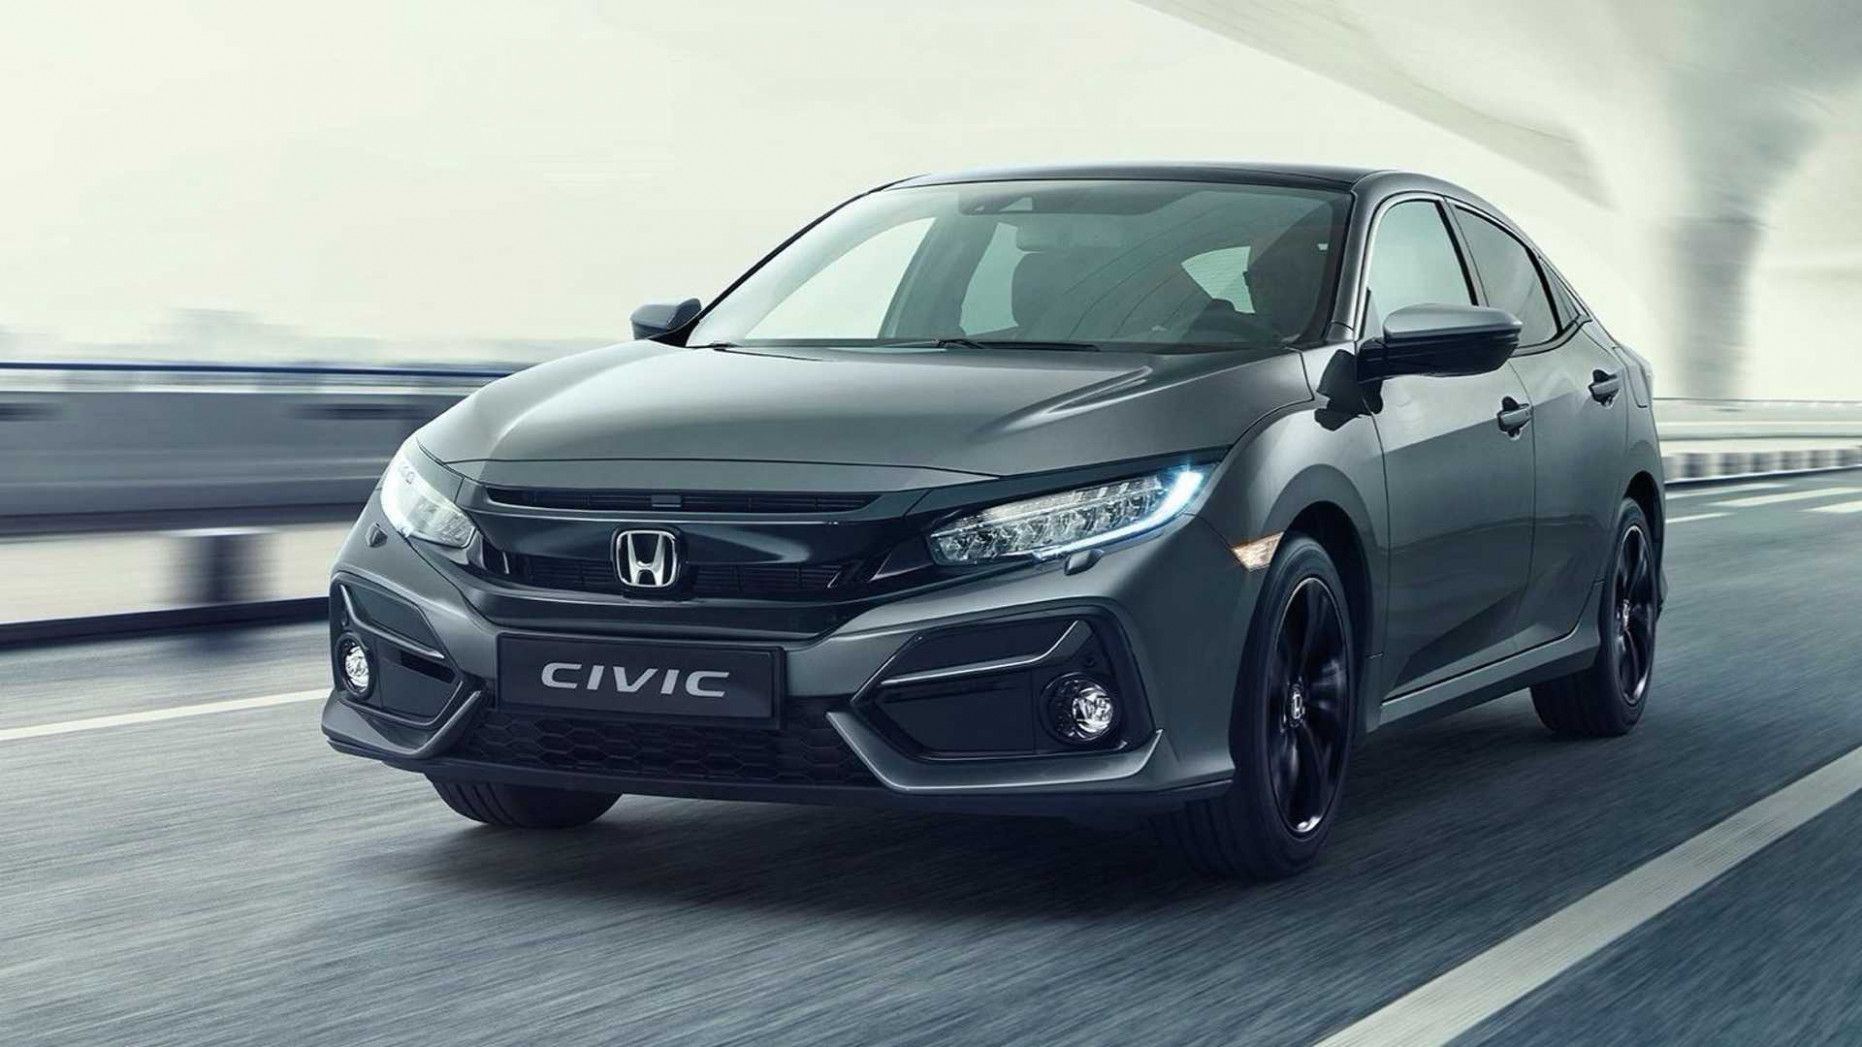 Honda Civic 2020 Ratings di 2020